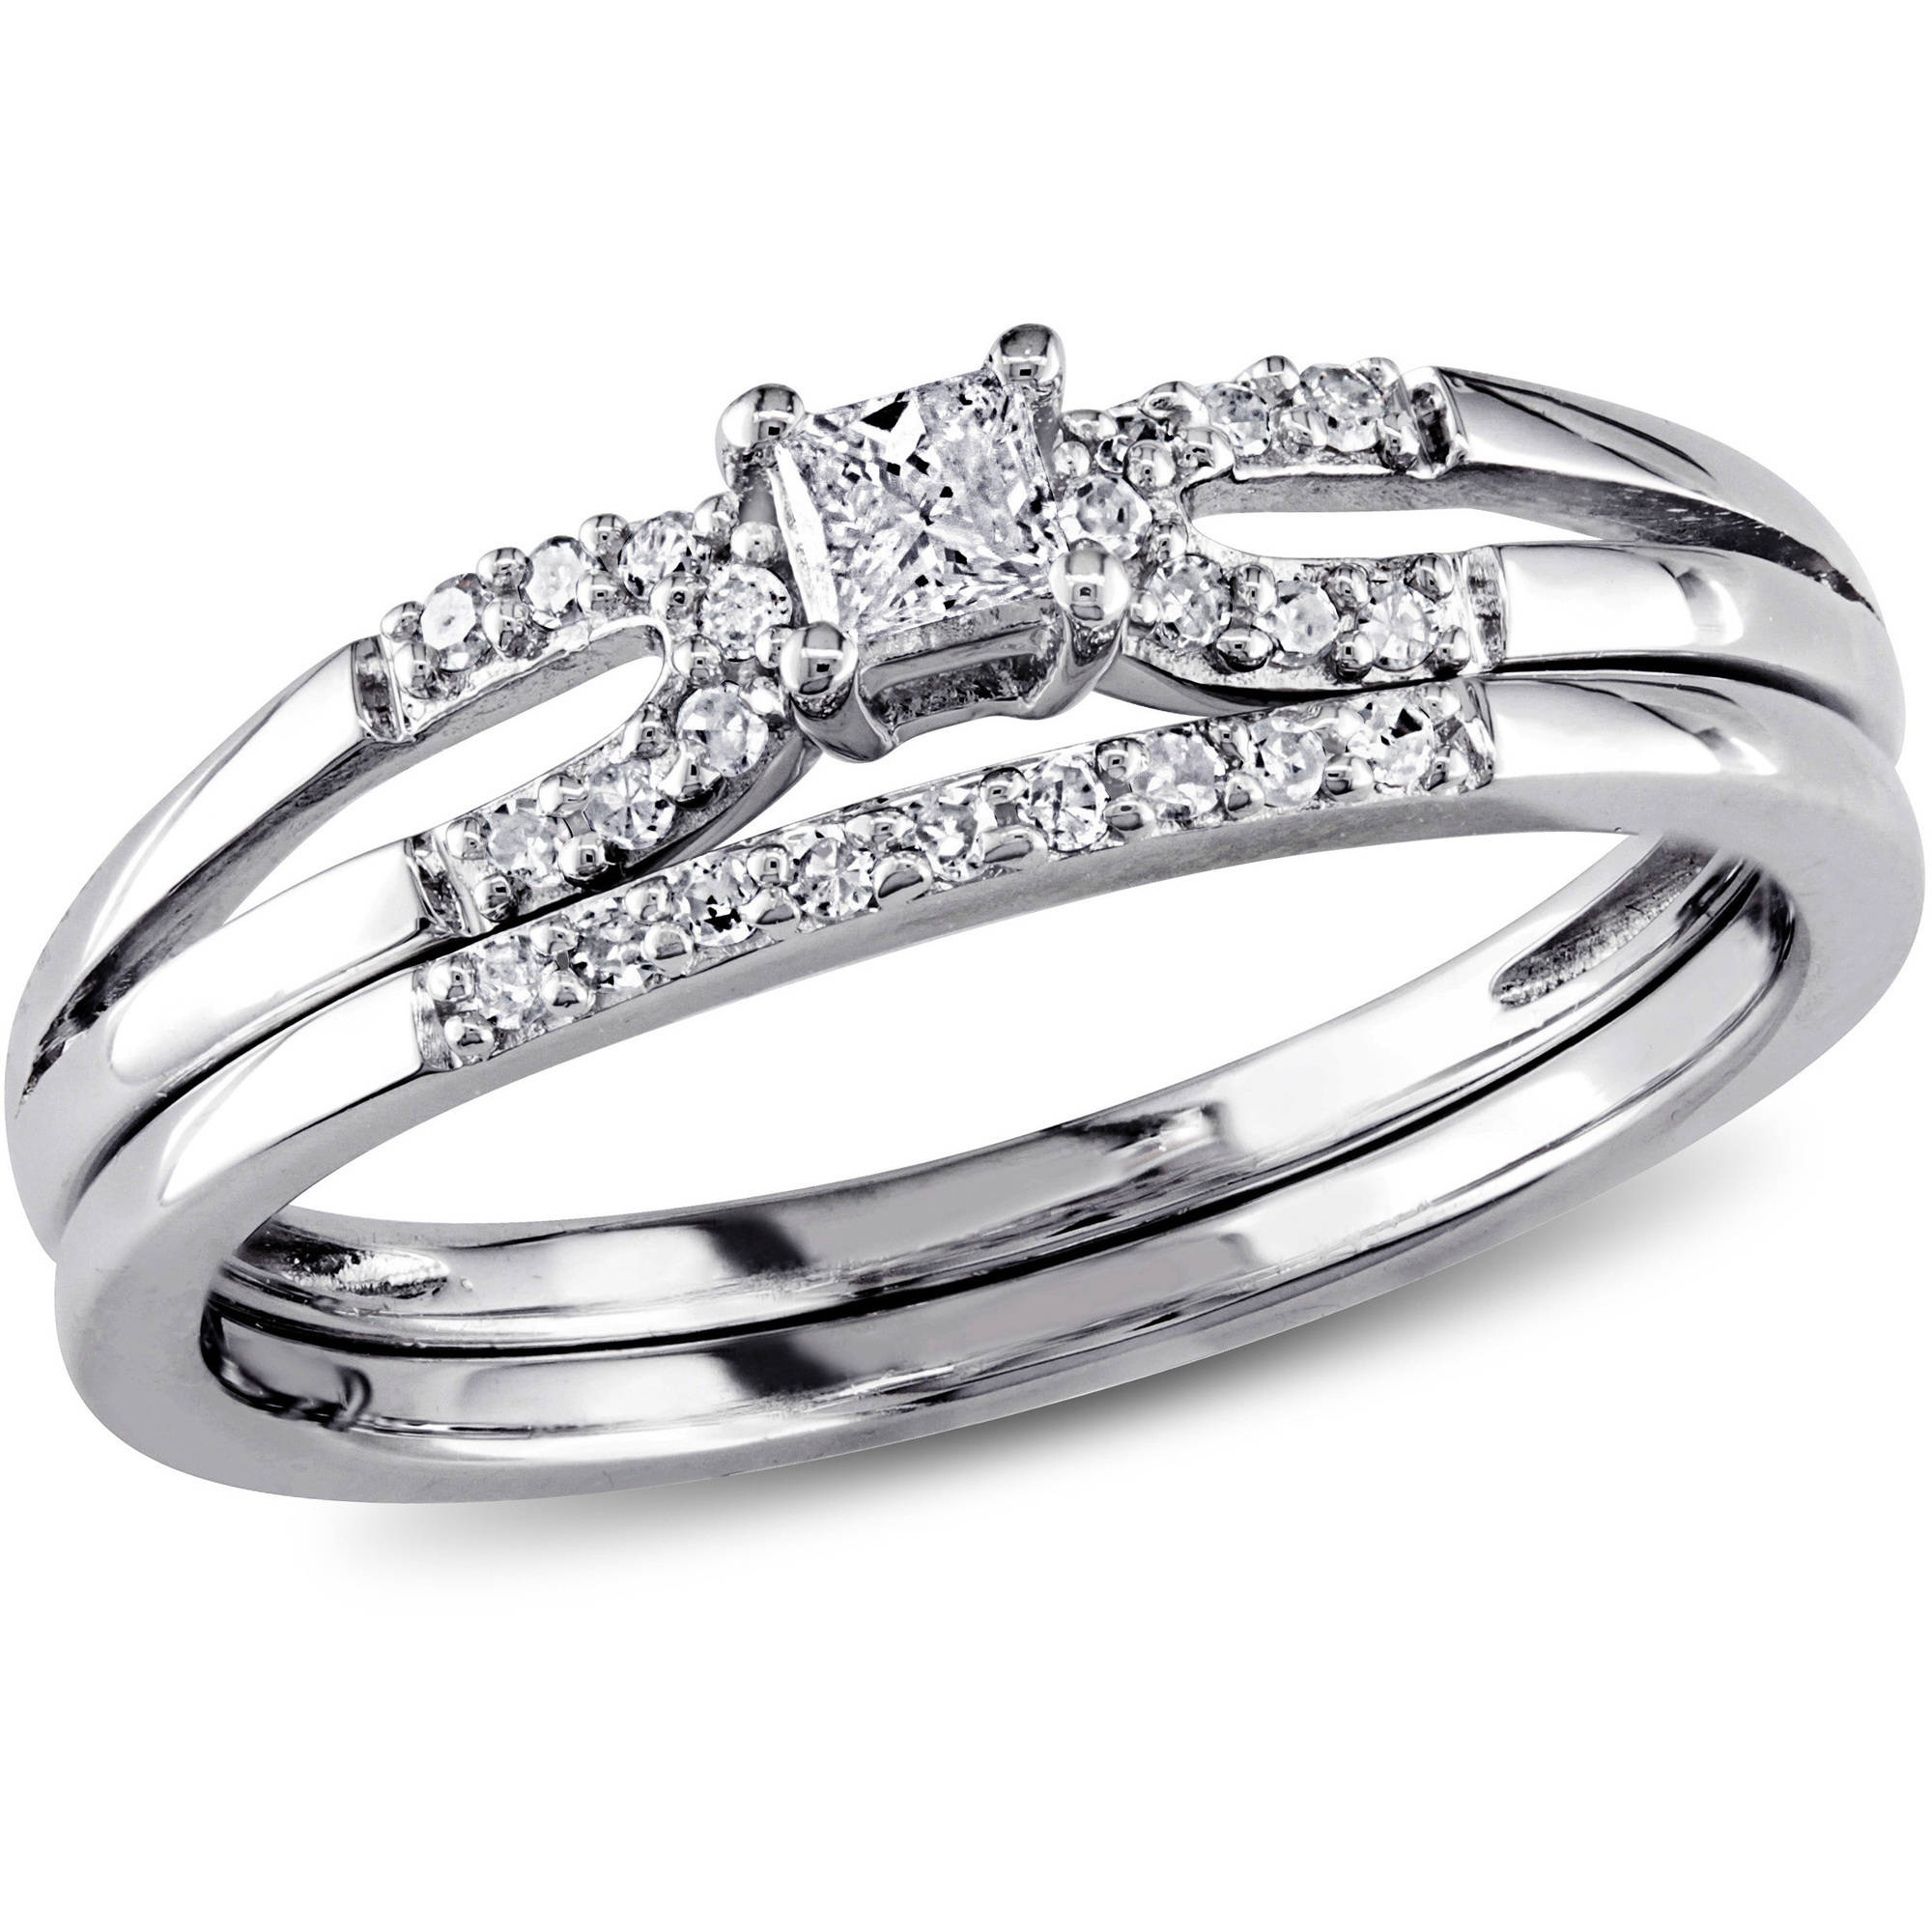 Miabella 1/5 Carat T.W. Princess and Round-Cut Diamond Sterling Silver Bridal Ring Set